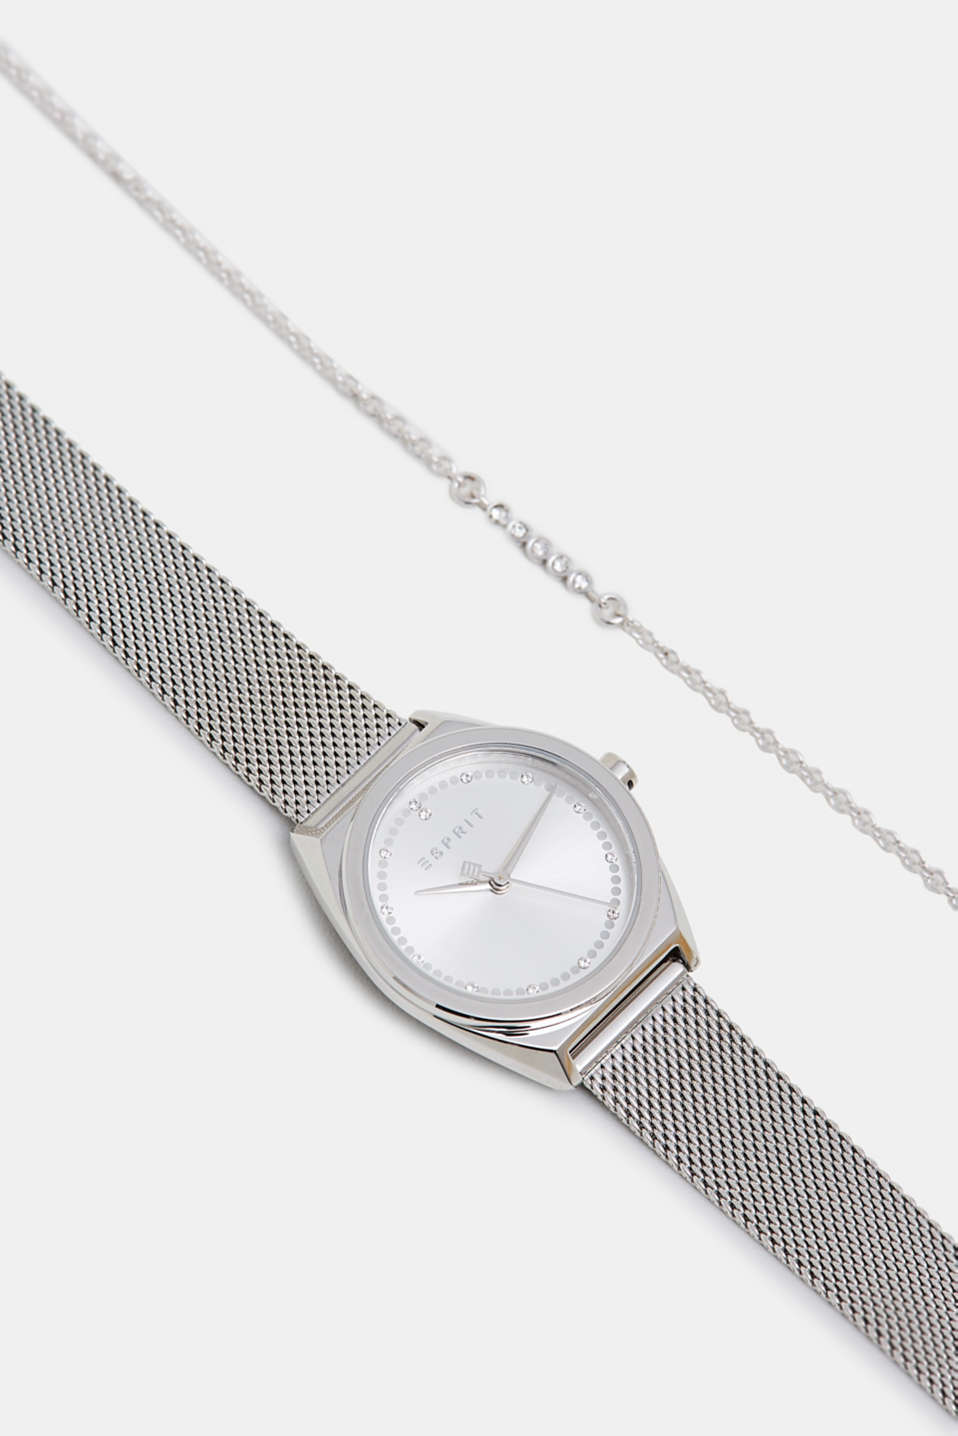 Bracelet and watch set, in stainless steel, SILVER, detail image number 4